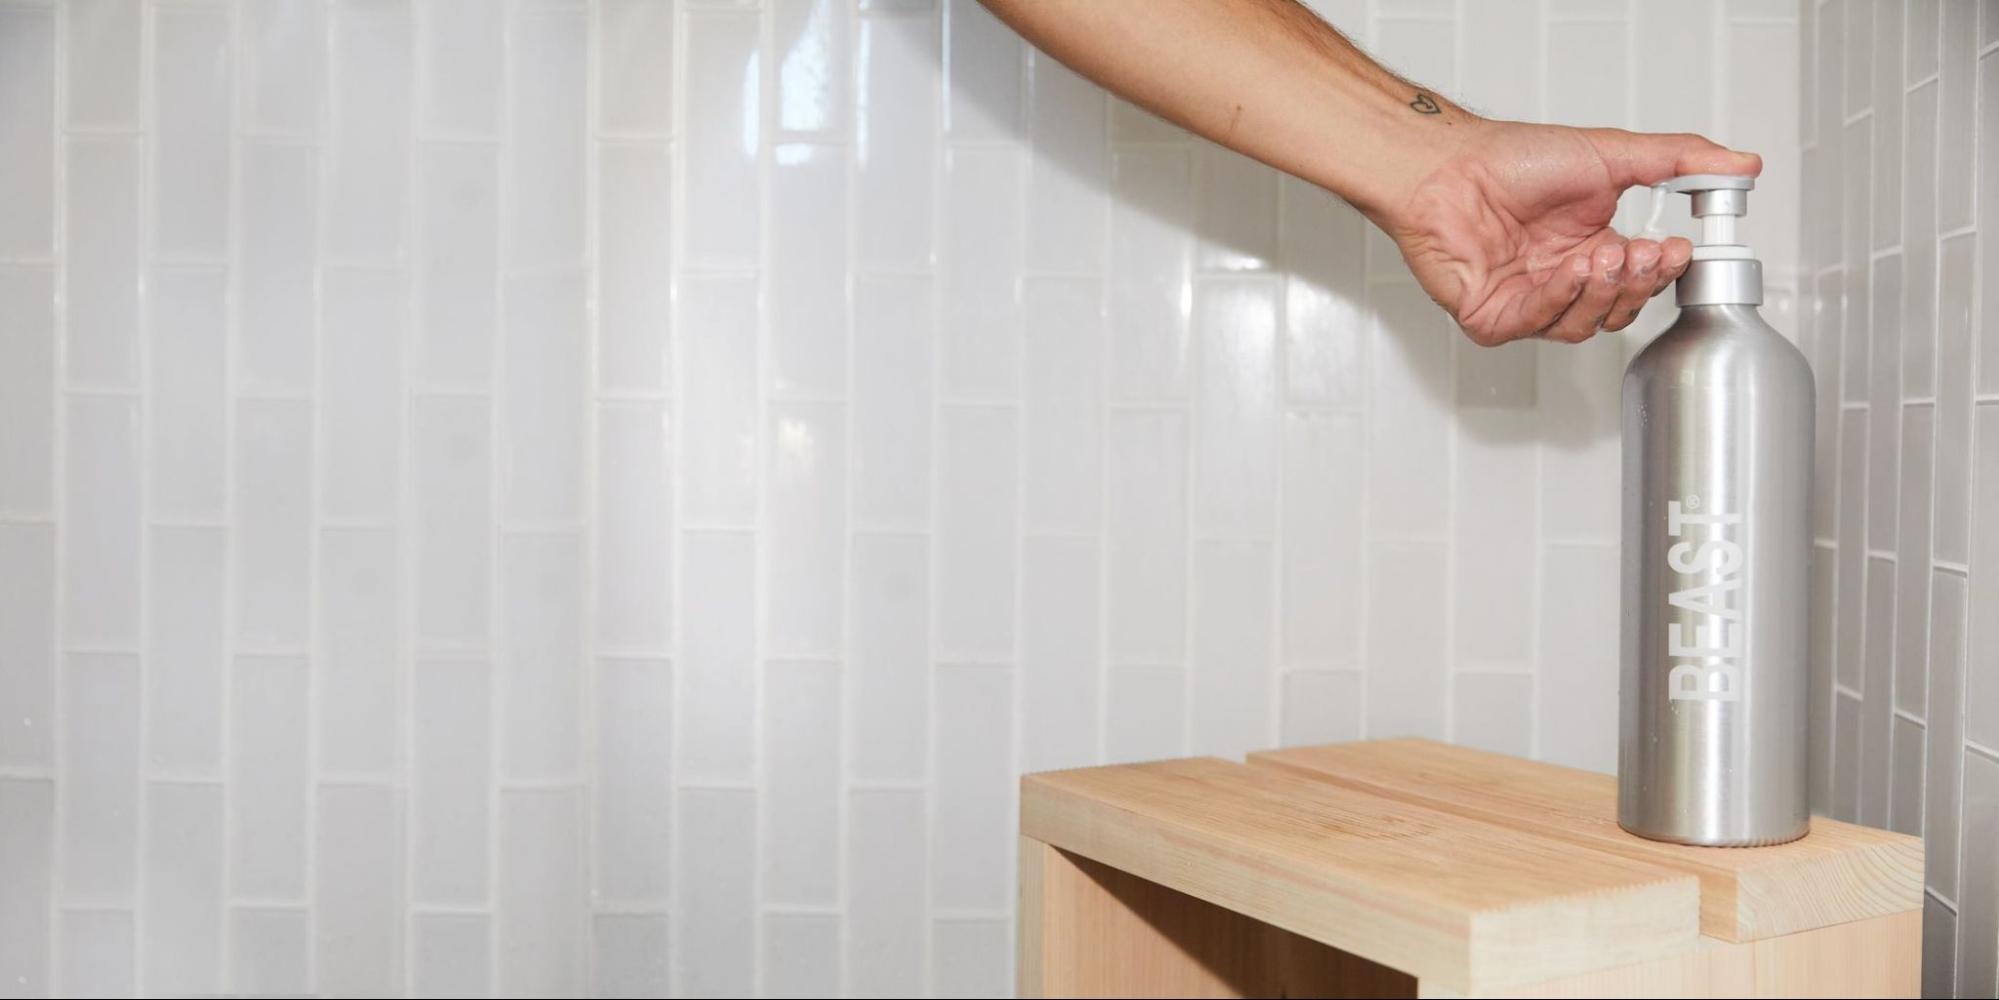 A hand in the shower using a refillable shampoo dispenser from Beast.